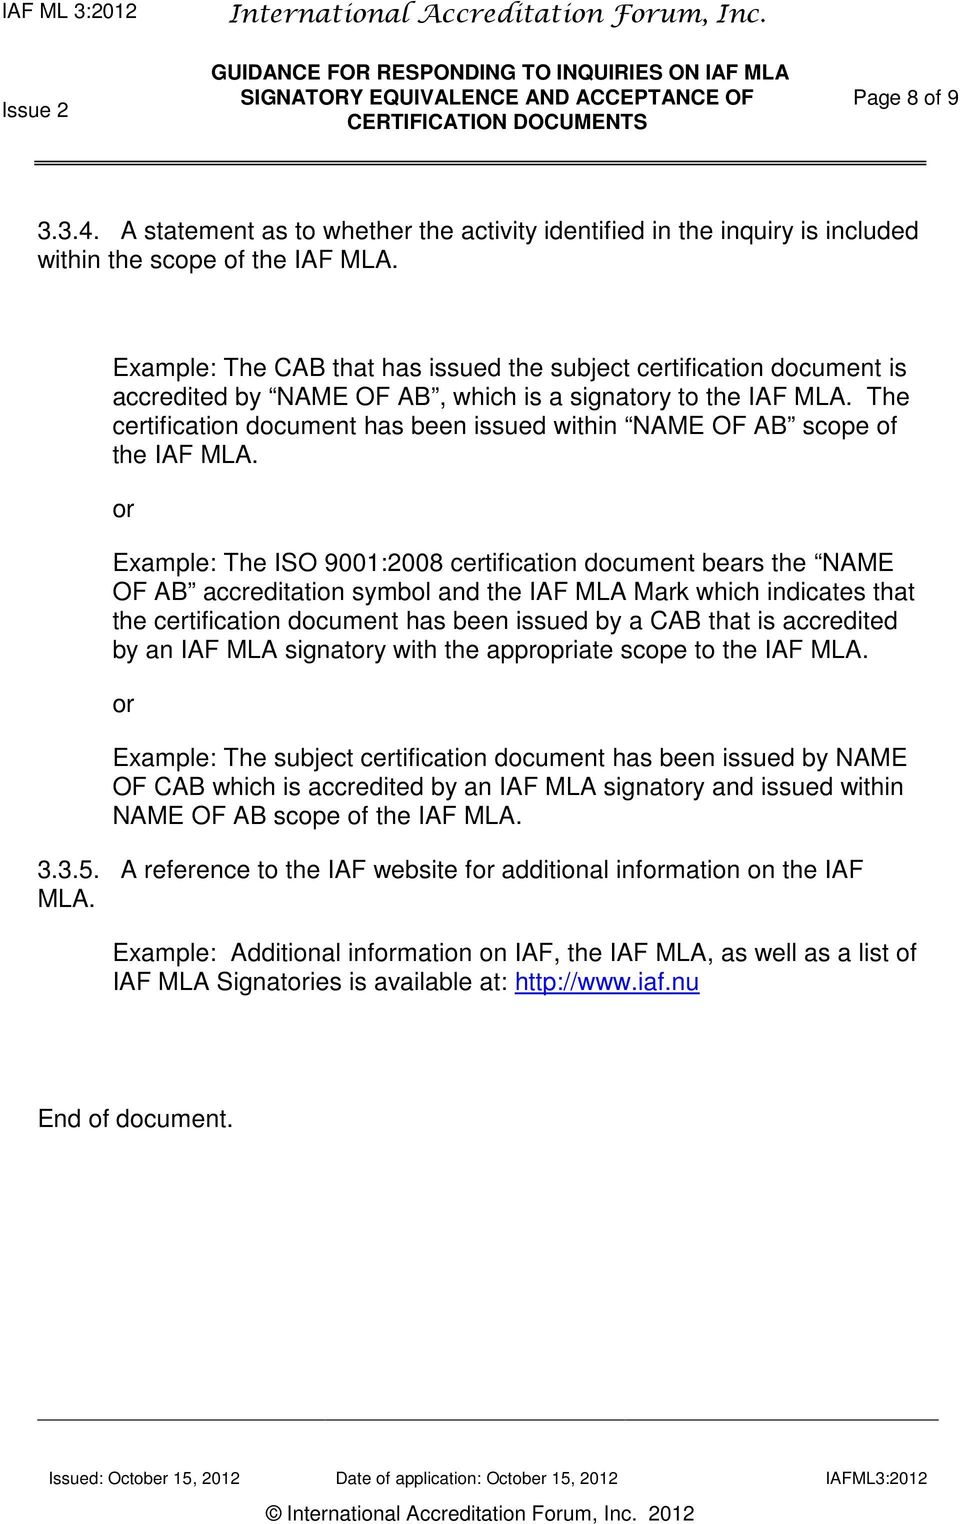 The certification document has been issued within NAME OF AB scope of the IAF MLA.